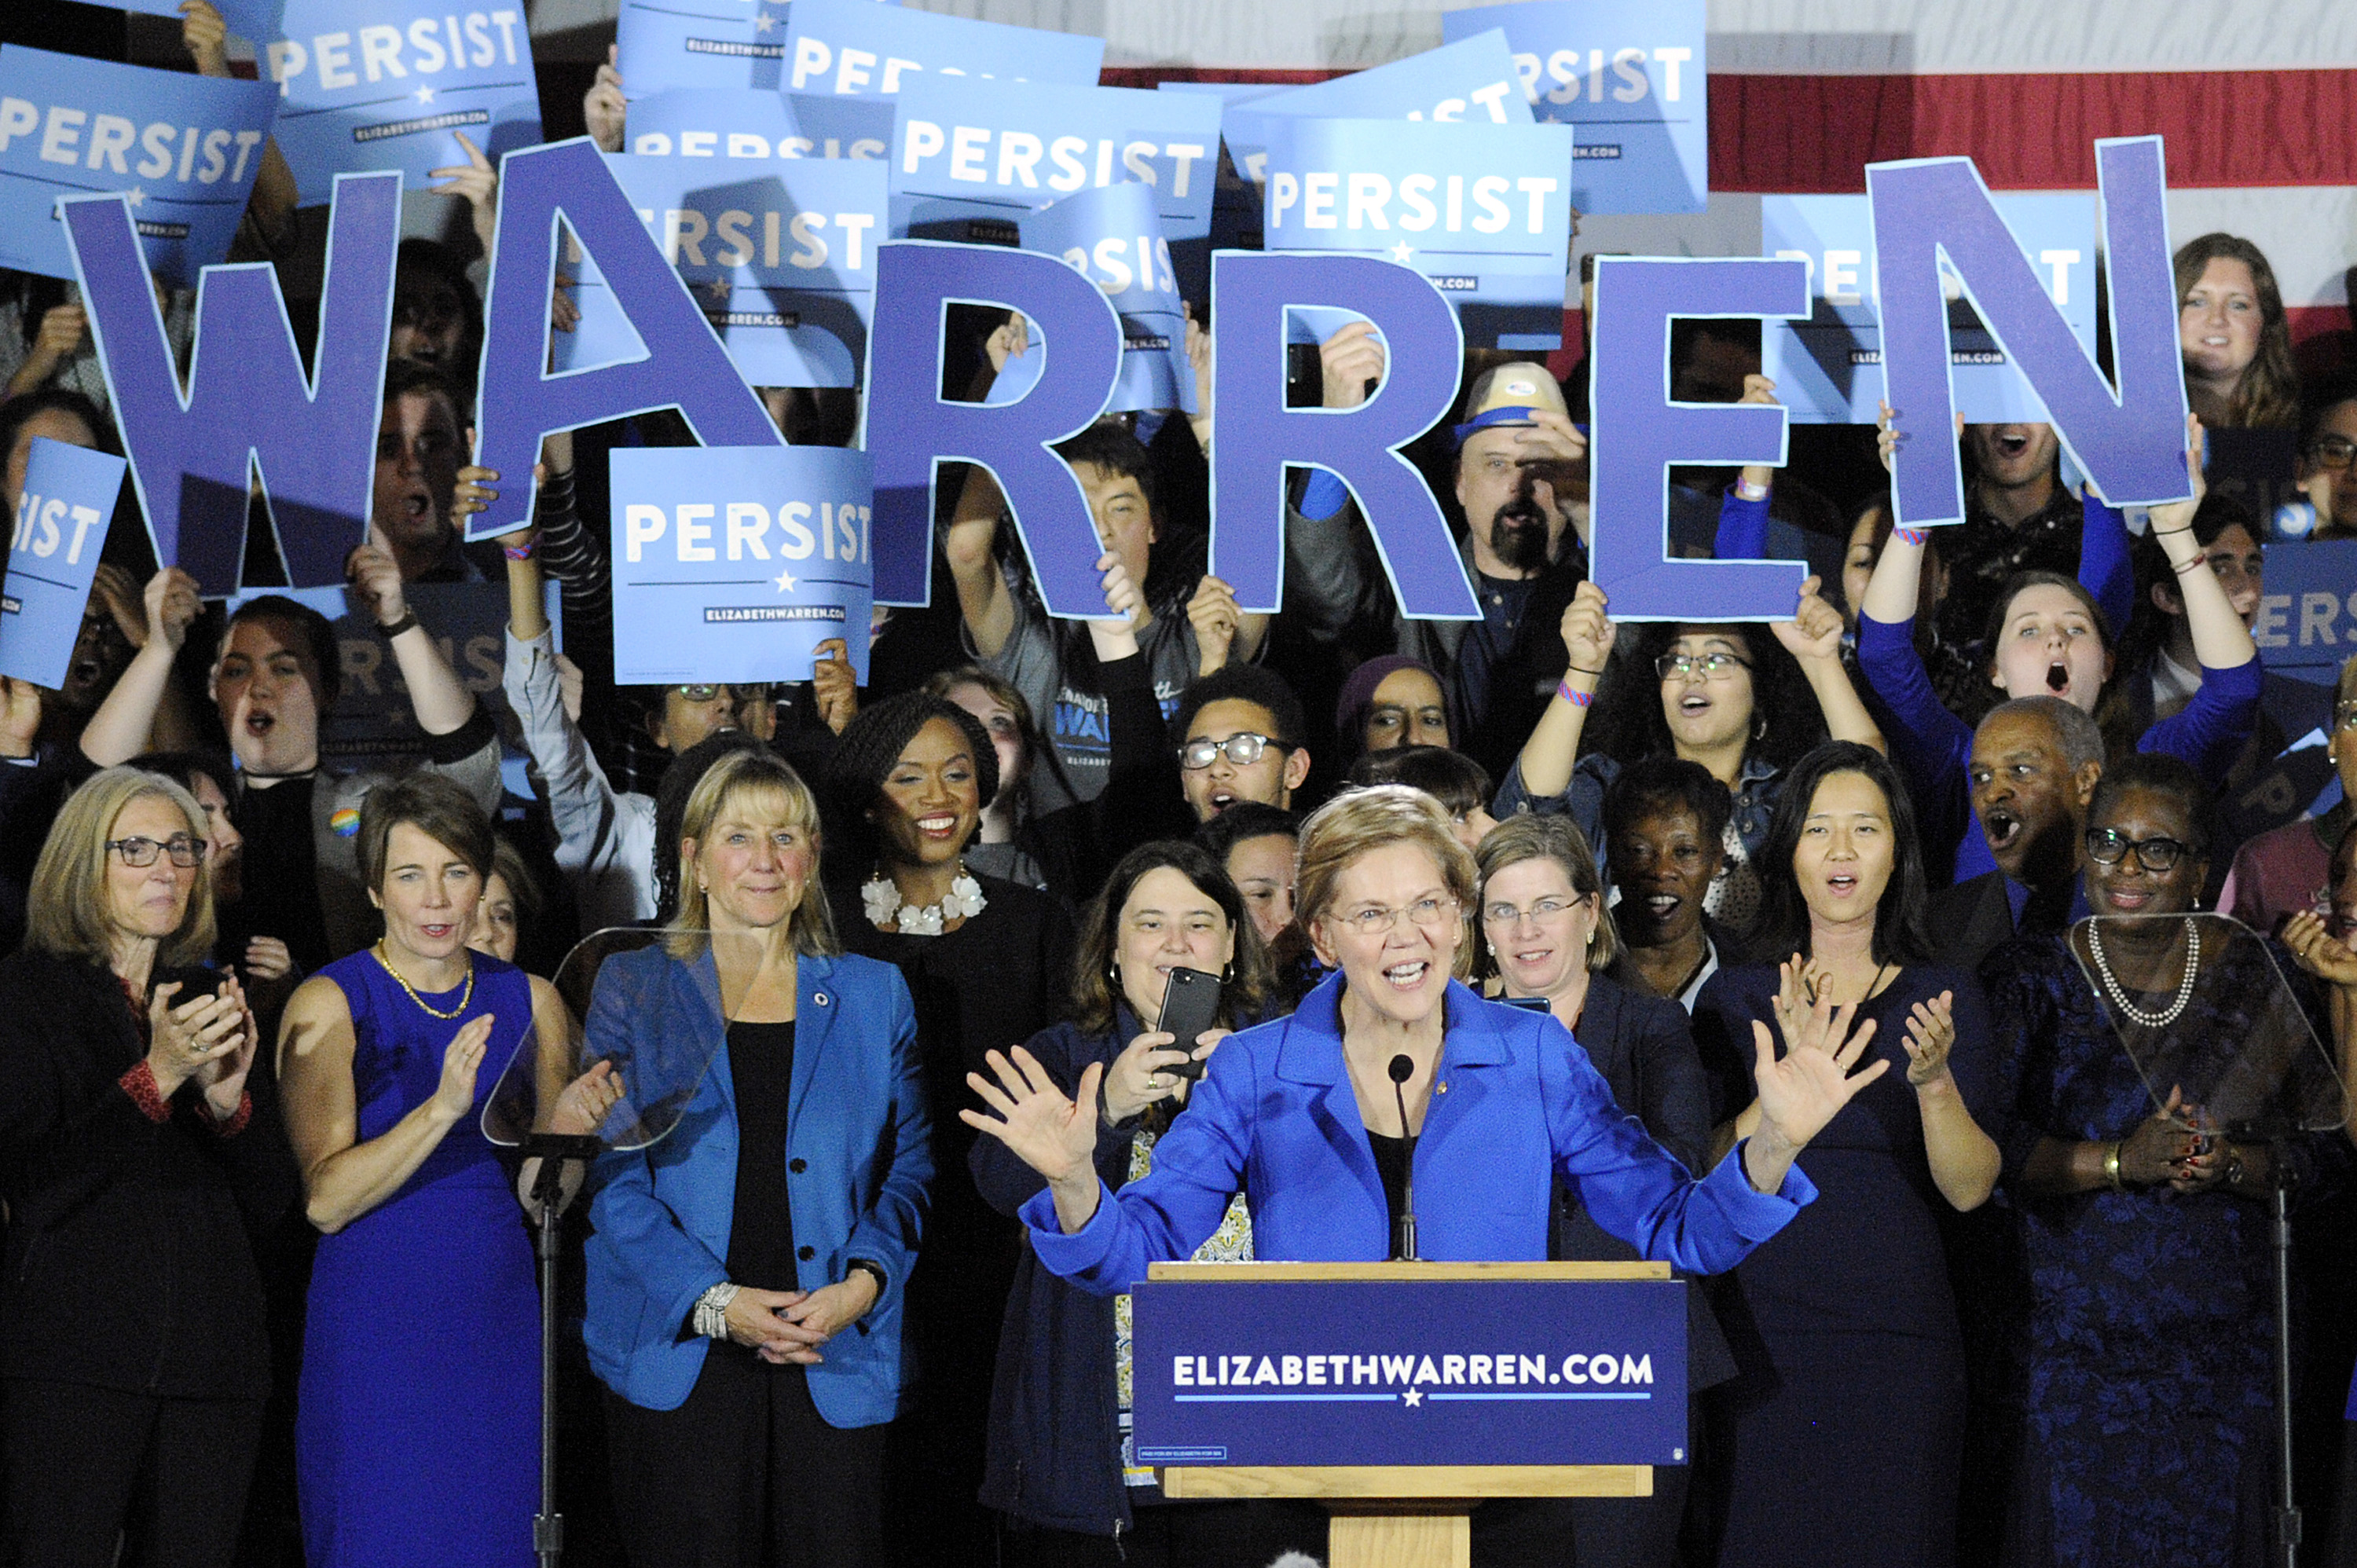 US Senator Elizabeth Warren (D-MA) addresses the audience during the Election Day Massachusetts Democratic Coordinated Campaign Election Night Celebration at the Fairmont Copley Hotel in Boston on November 6, 2018. (Photo by Joseph PREZIOSO / AFP) (Photo credit should read JOSEPH PREZIOSO/AFP/Getty Images)